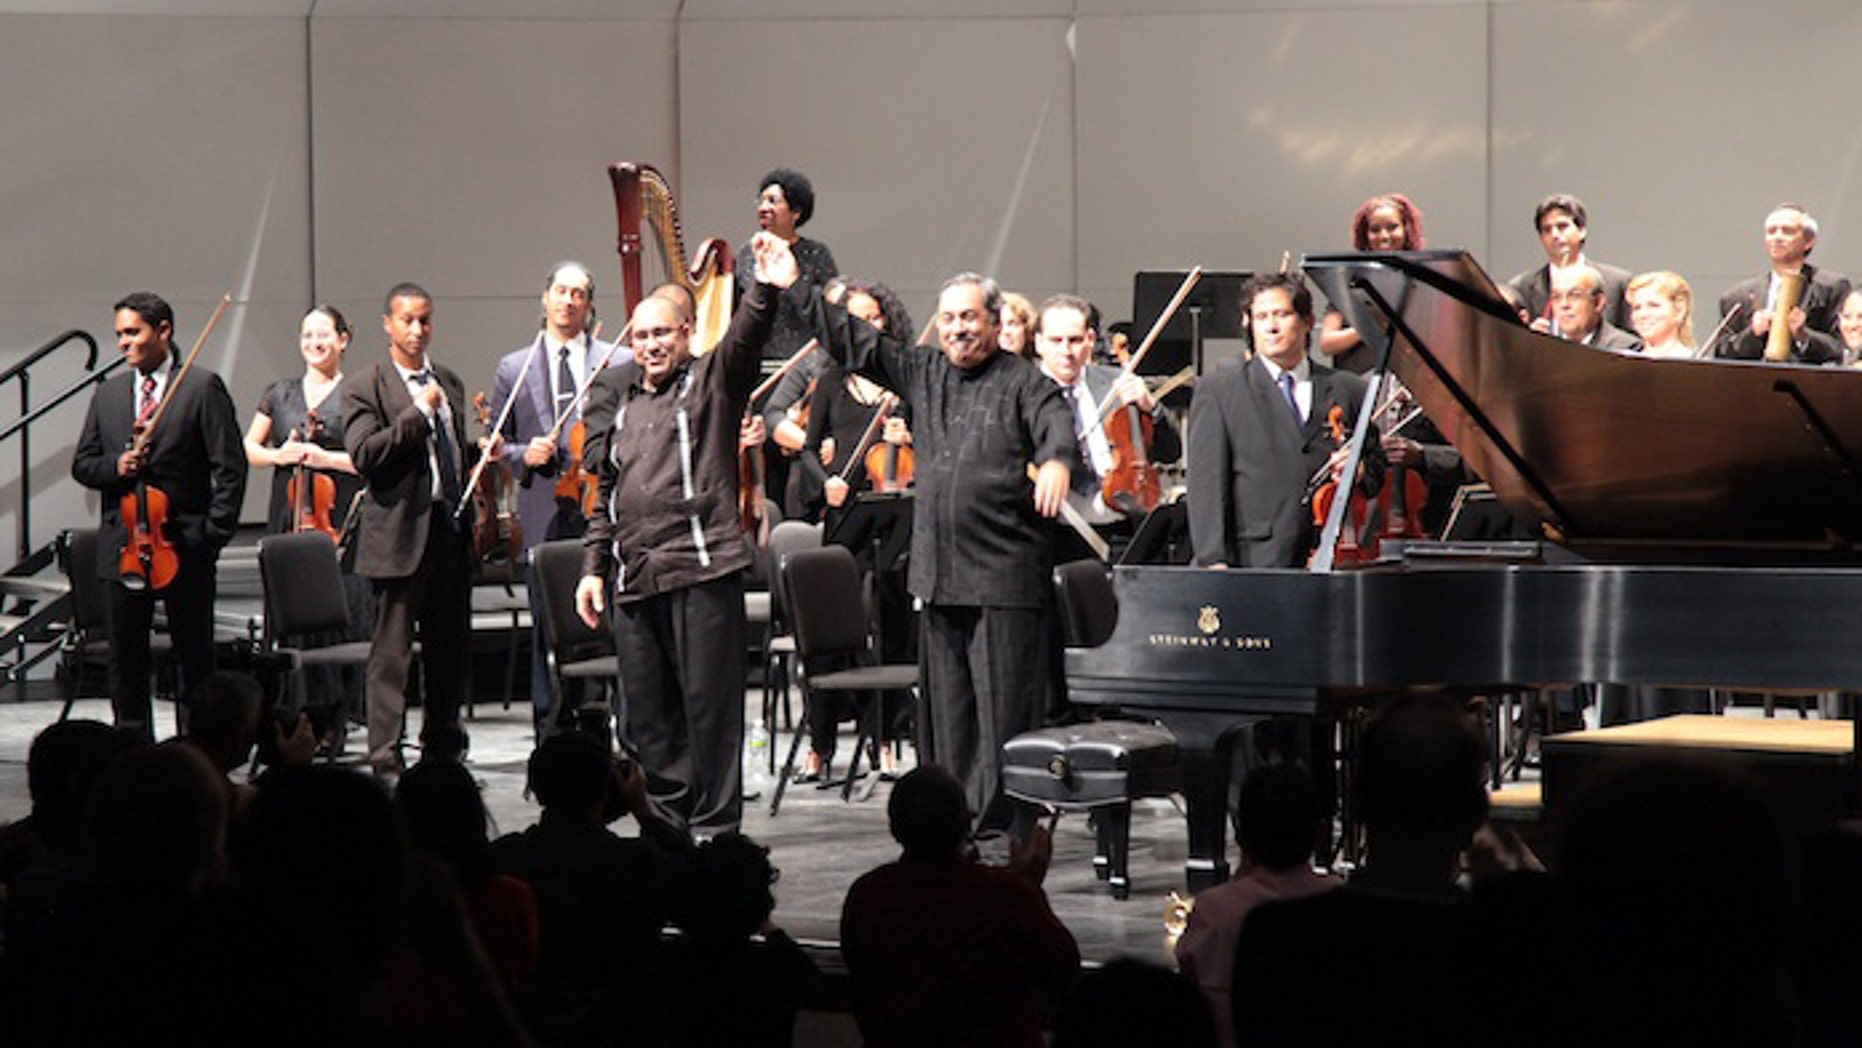 Nacho Herrera and Enrique Perez Mesa, along with the National Symphony Orchestra of Cuba, receive the applause of the audience in the Bronx